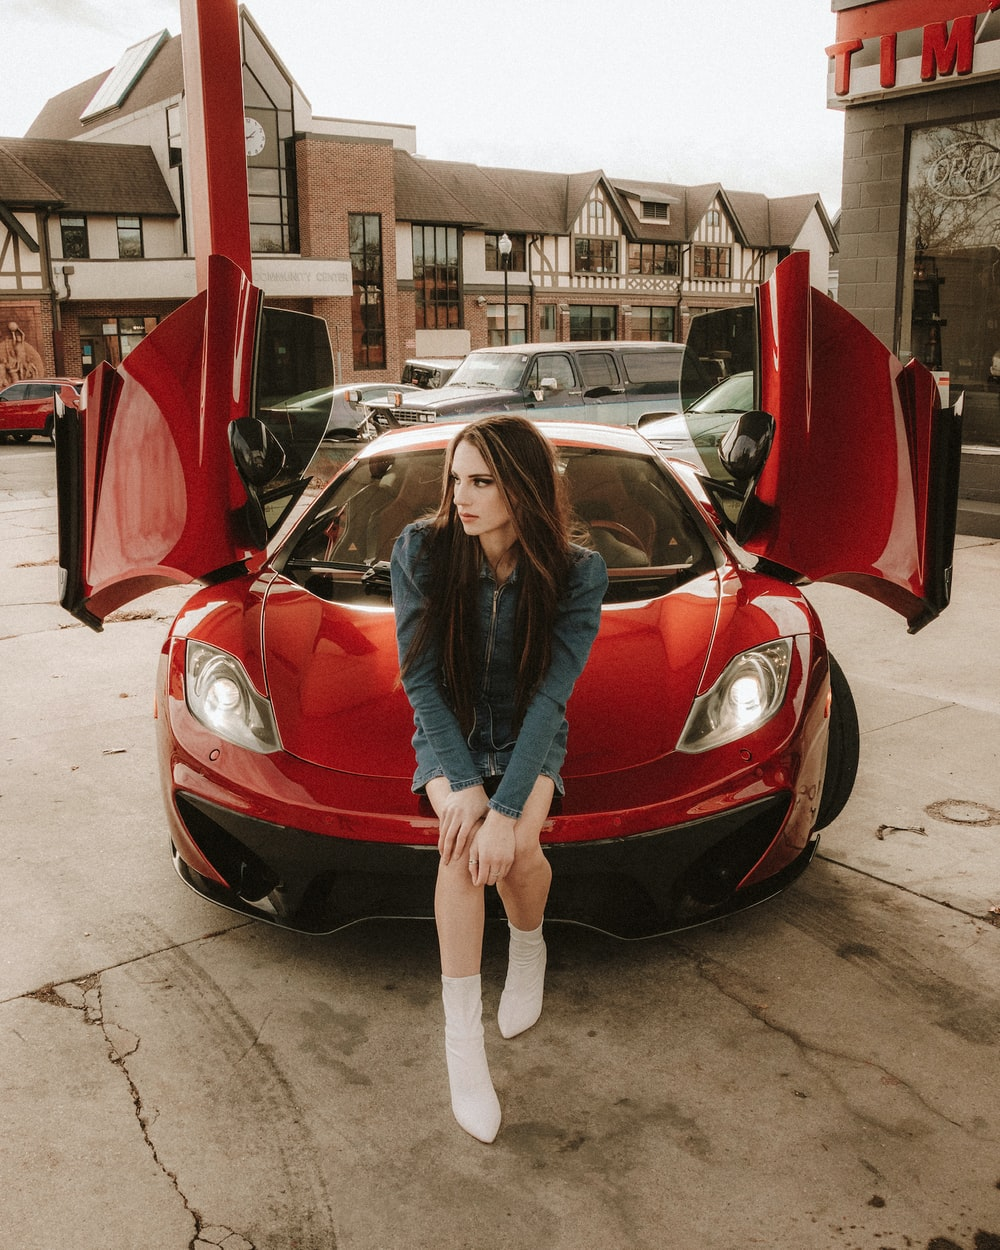 woman in blue jacket standing beside red car during daytime